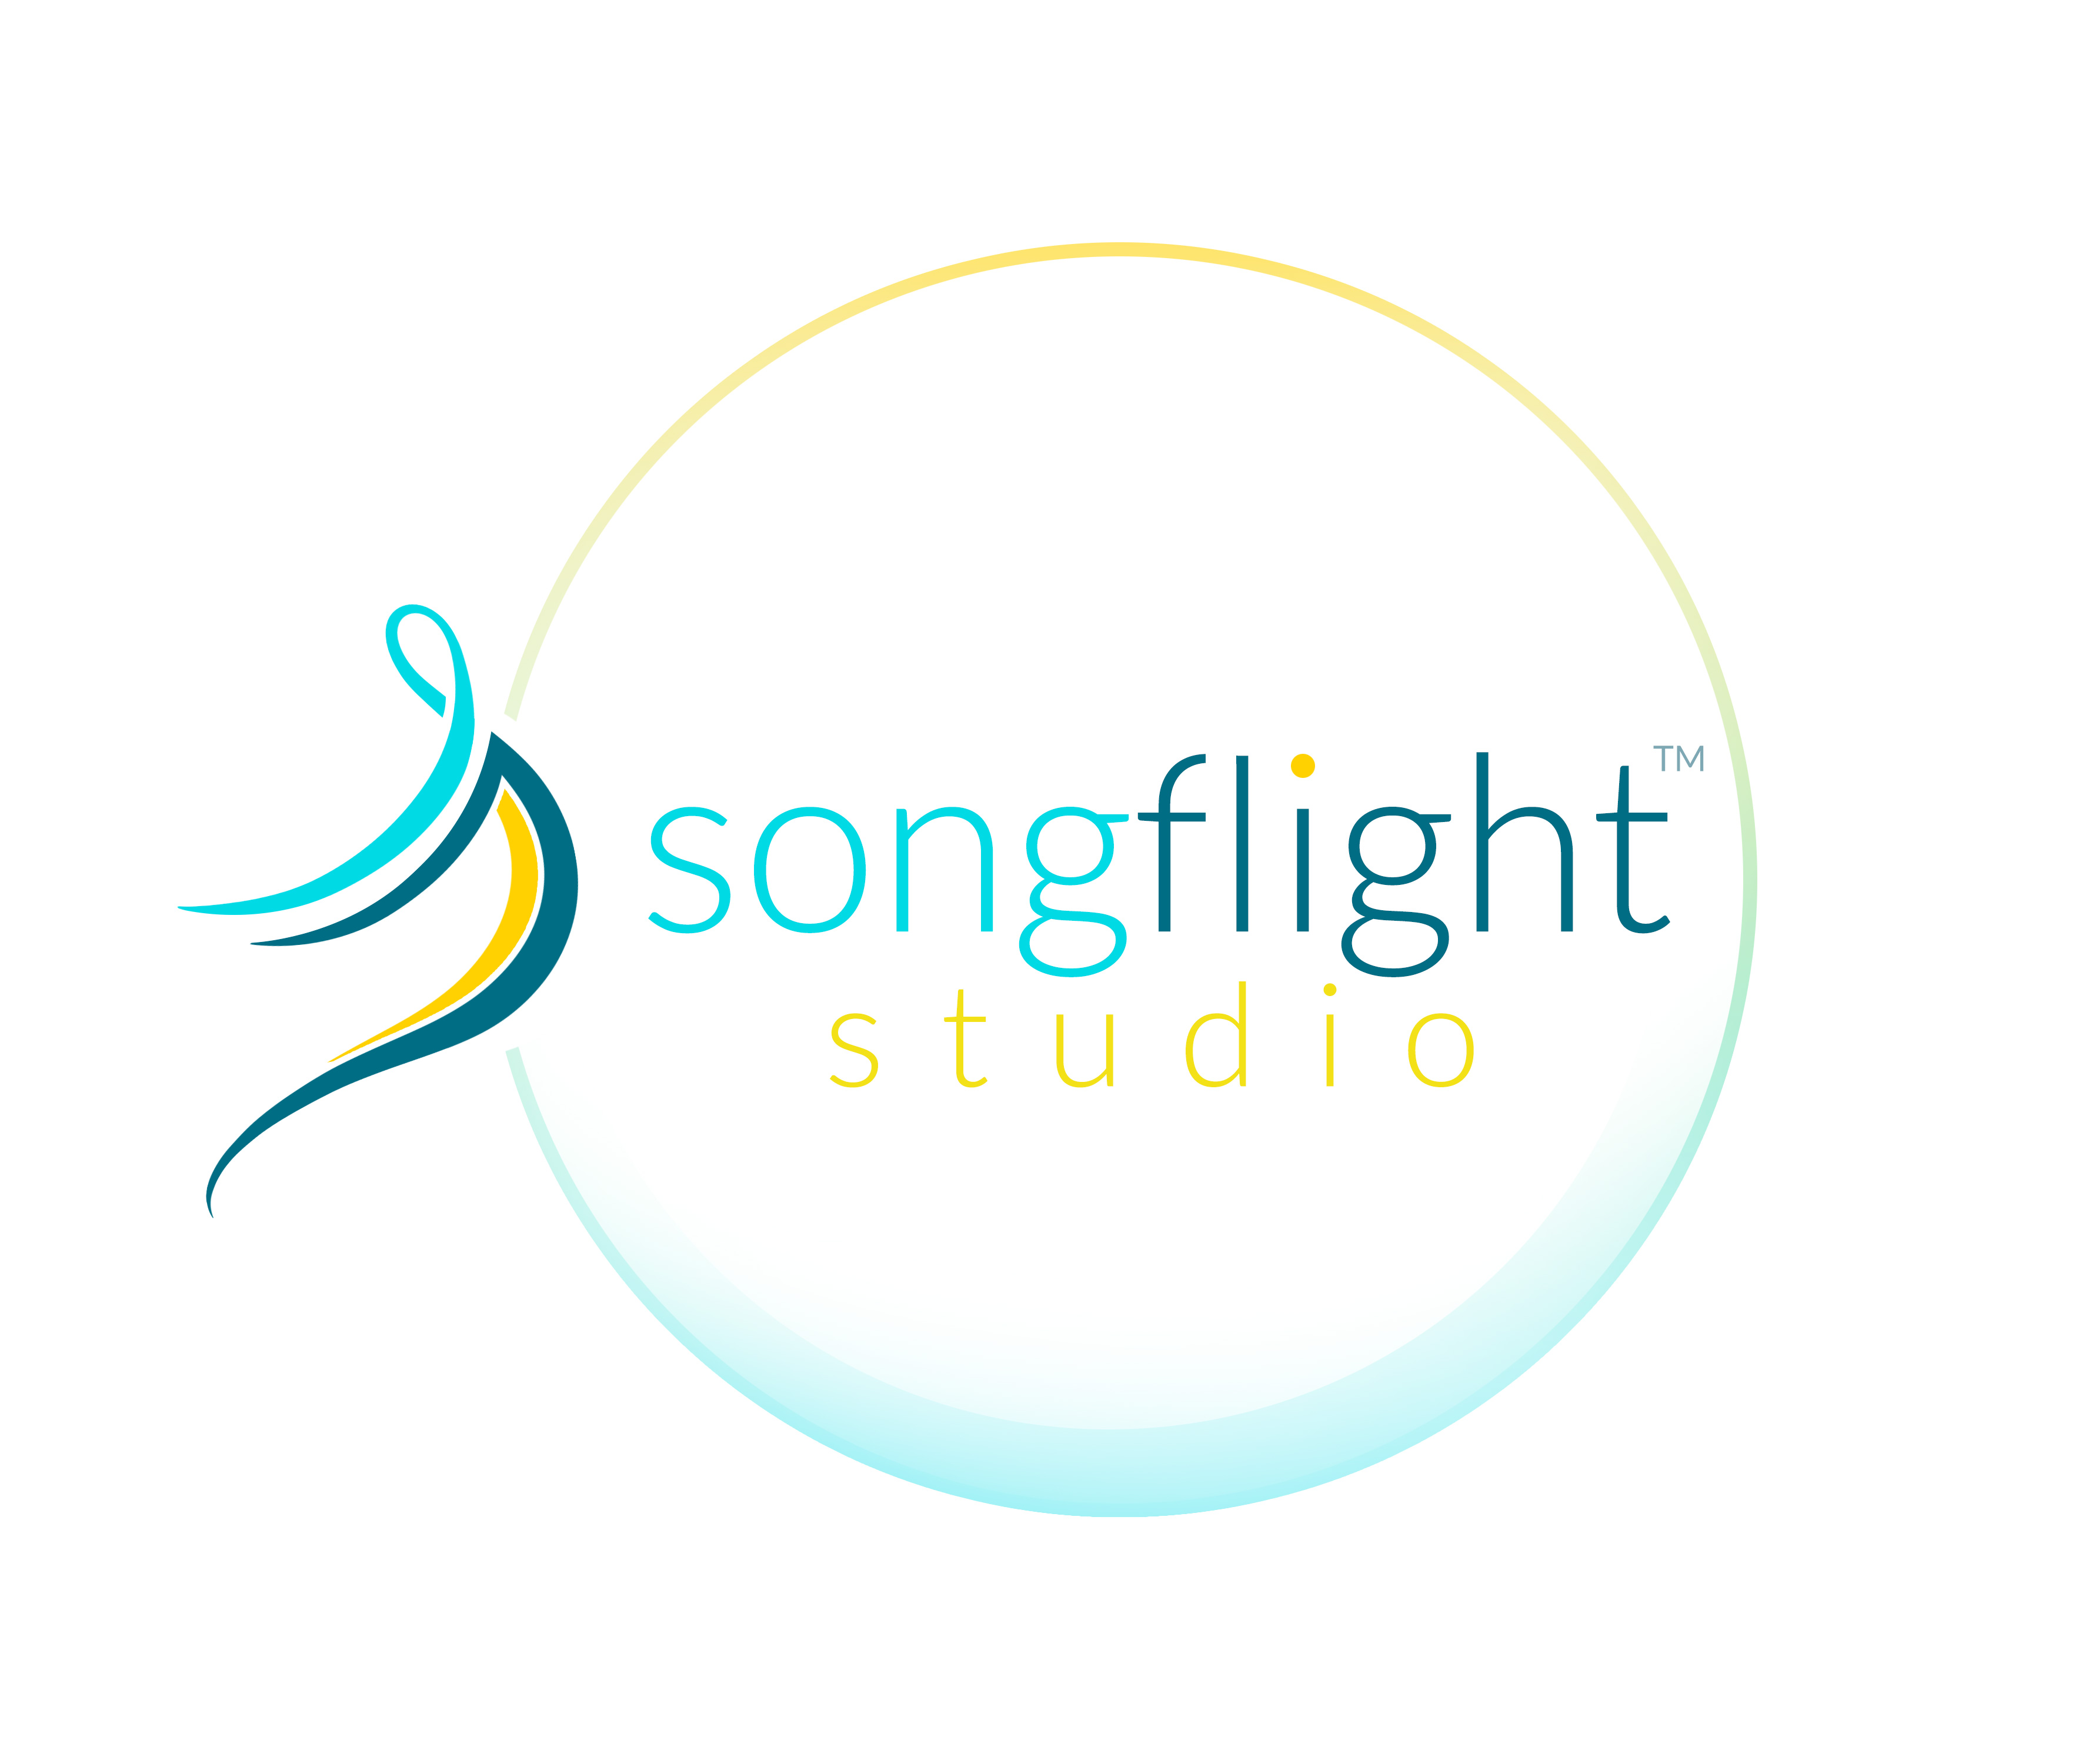 Songflight Studio